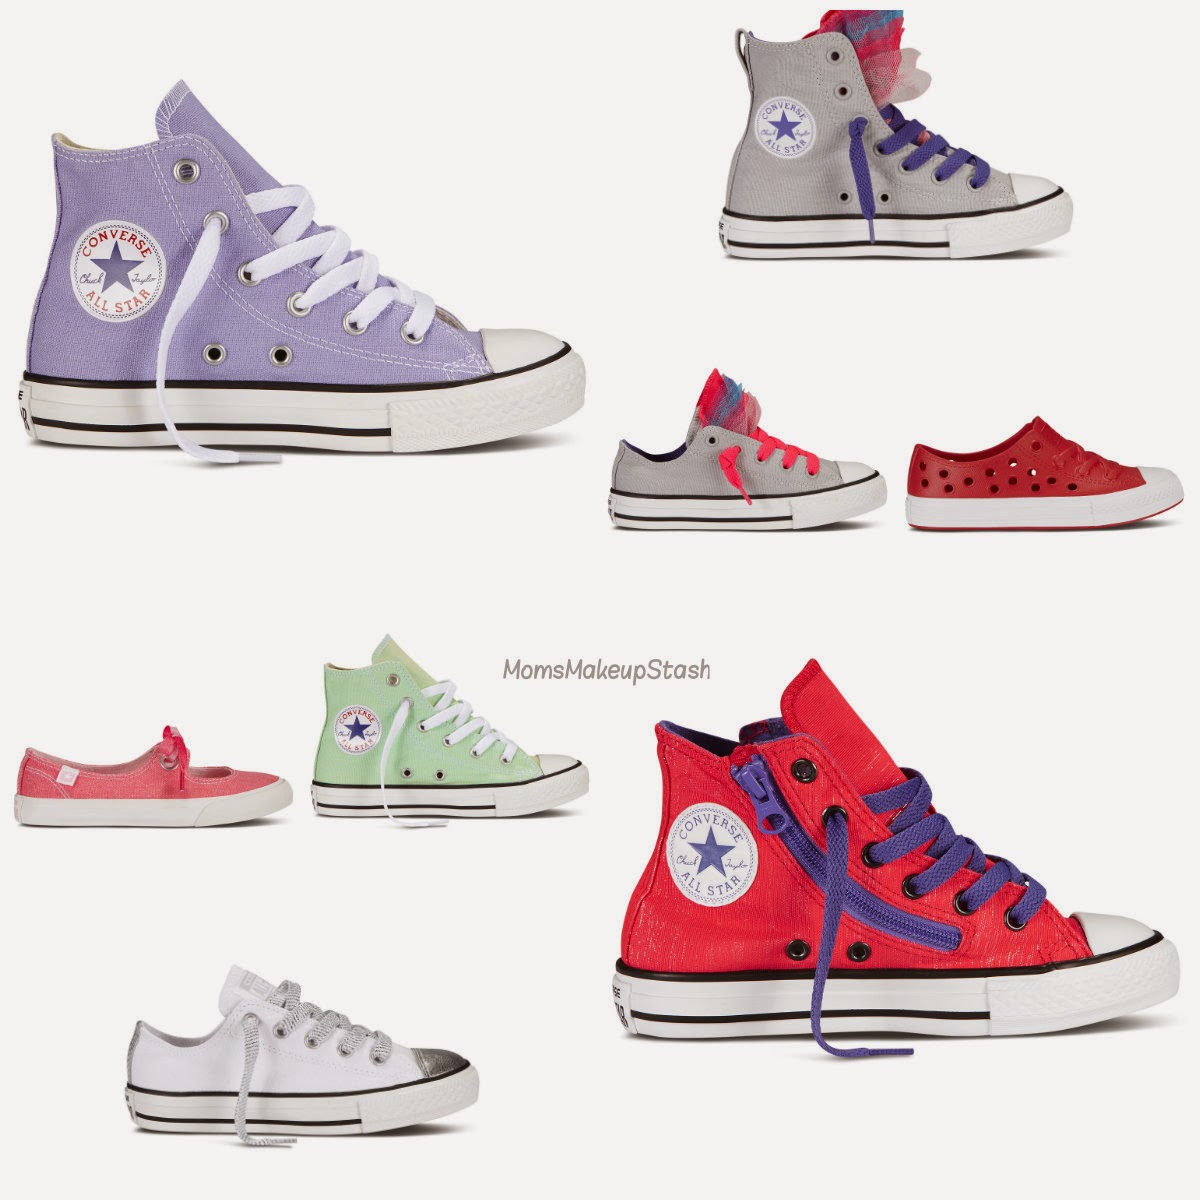 Converse, Men's Converse, Kids Converse, Women's Converse, Converse 2014, Converse Spring Collection